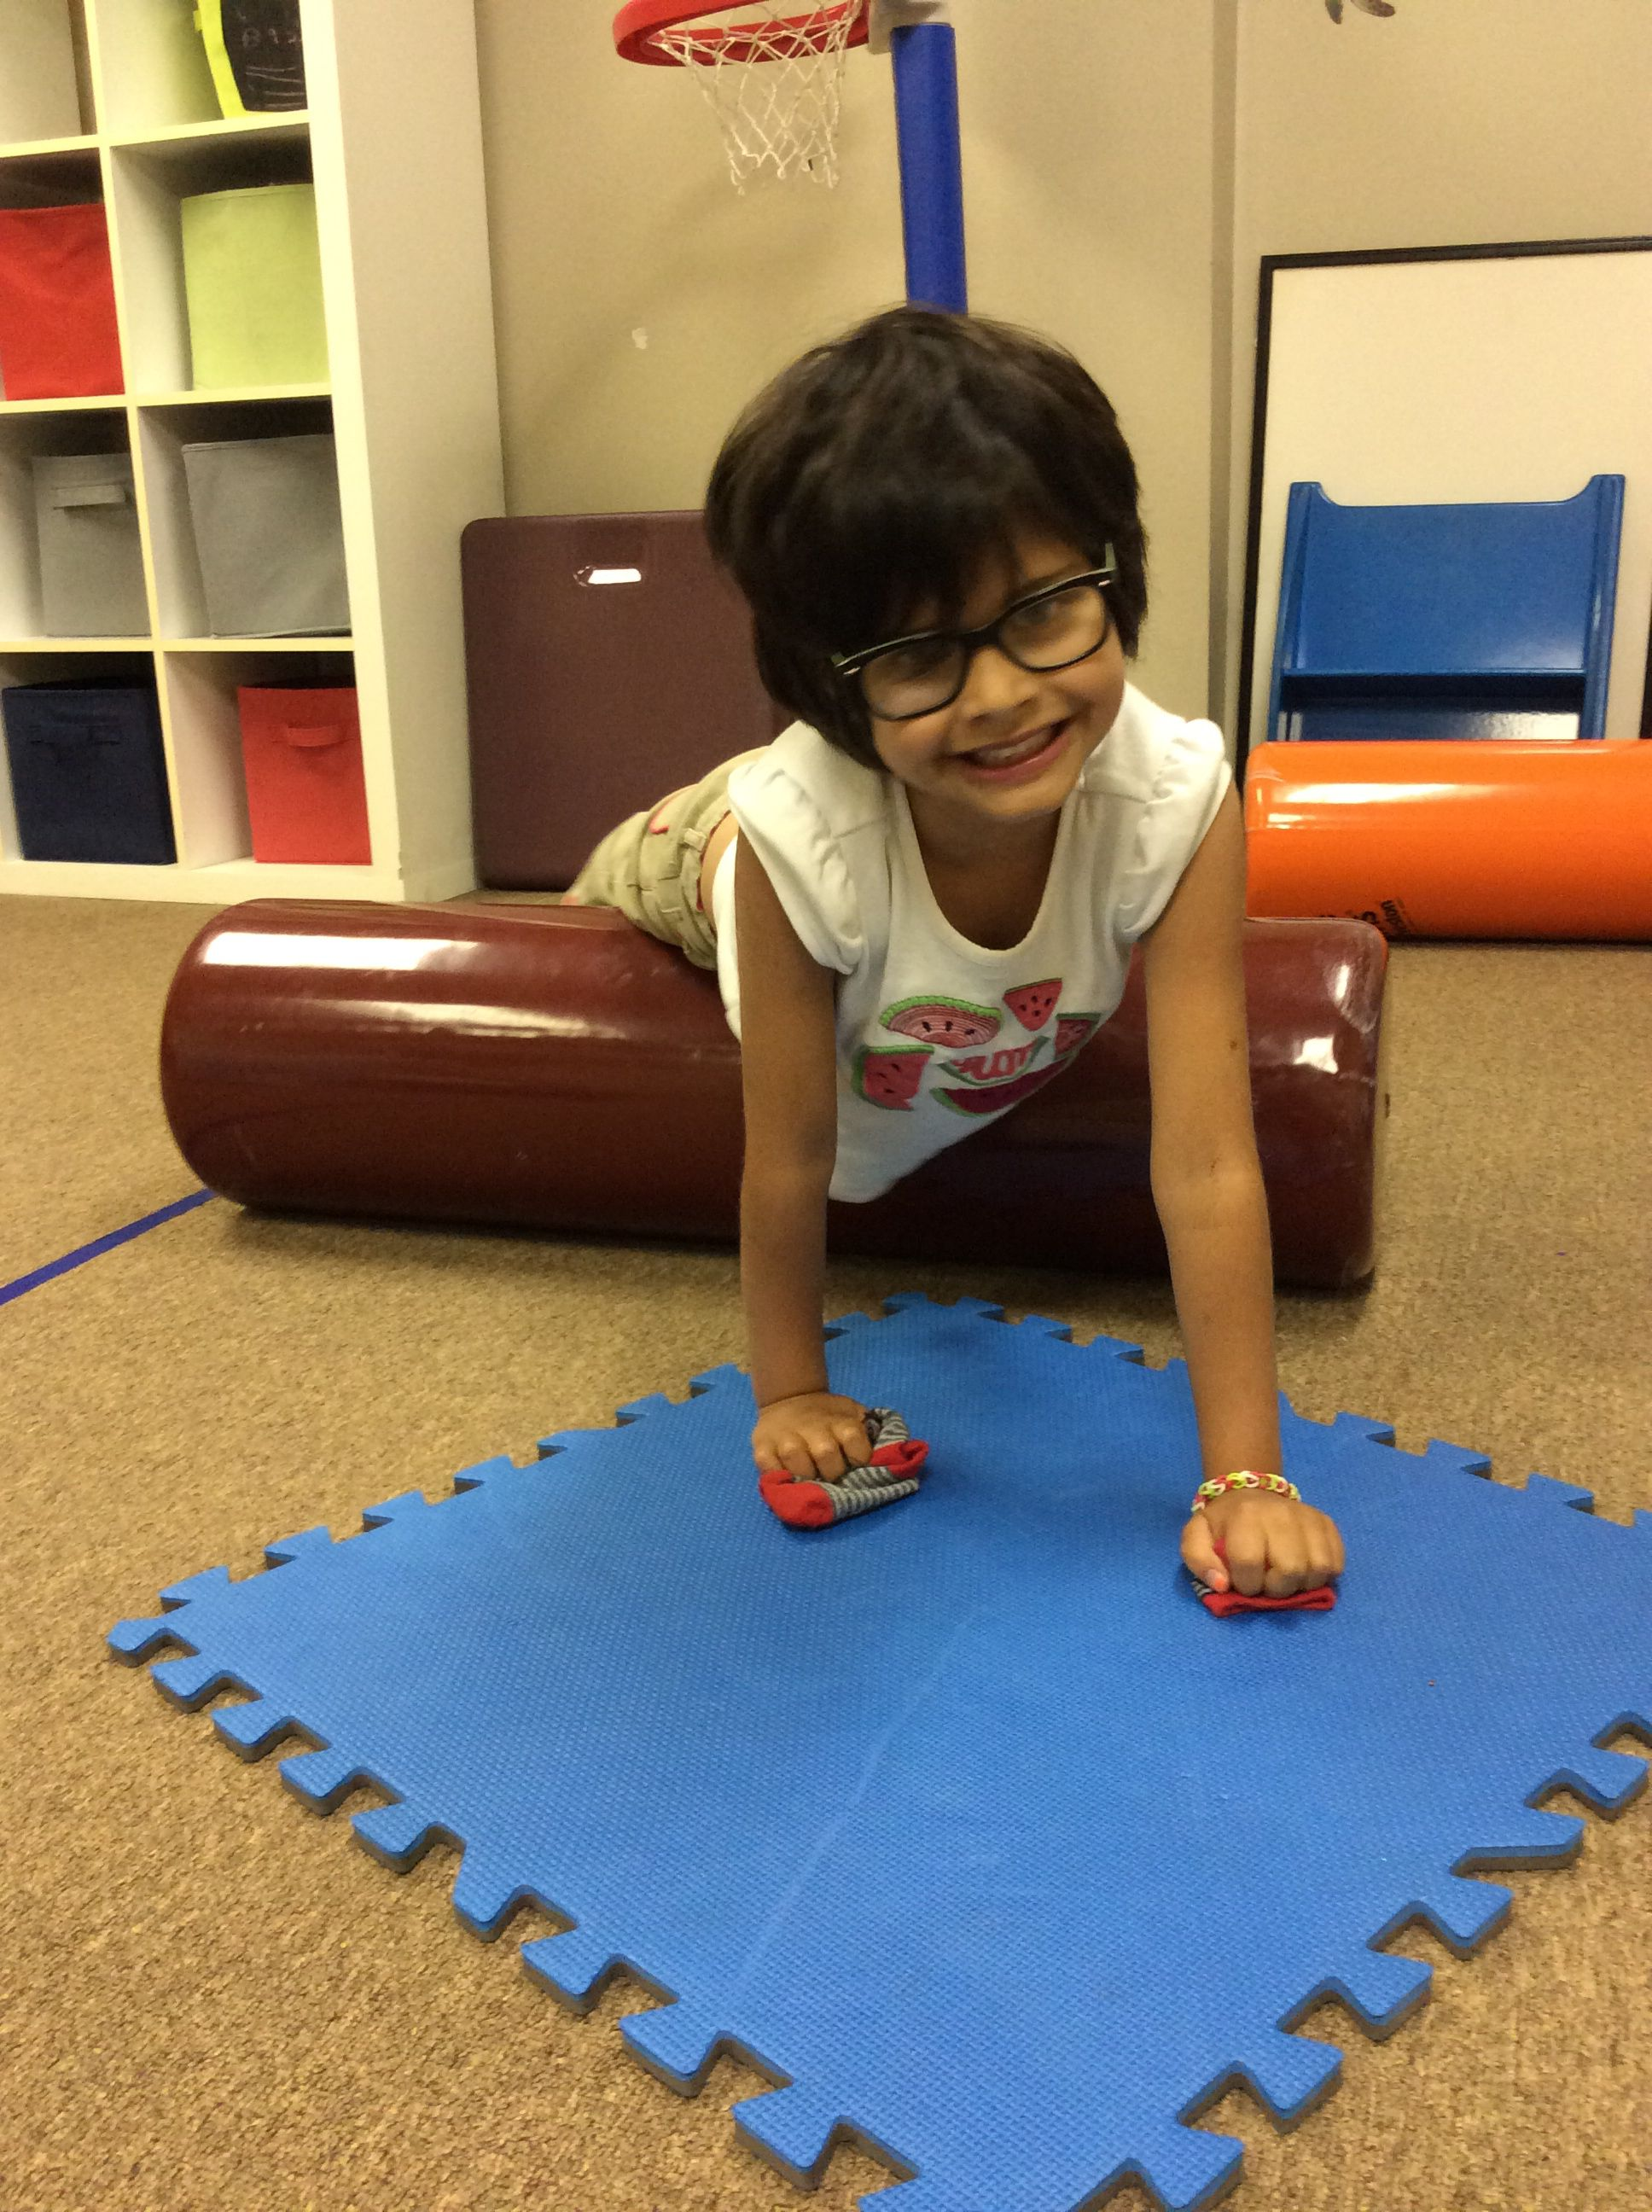 Weight Bearing Activities To Increase Upper Extremity Strength And Control